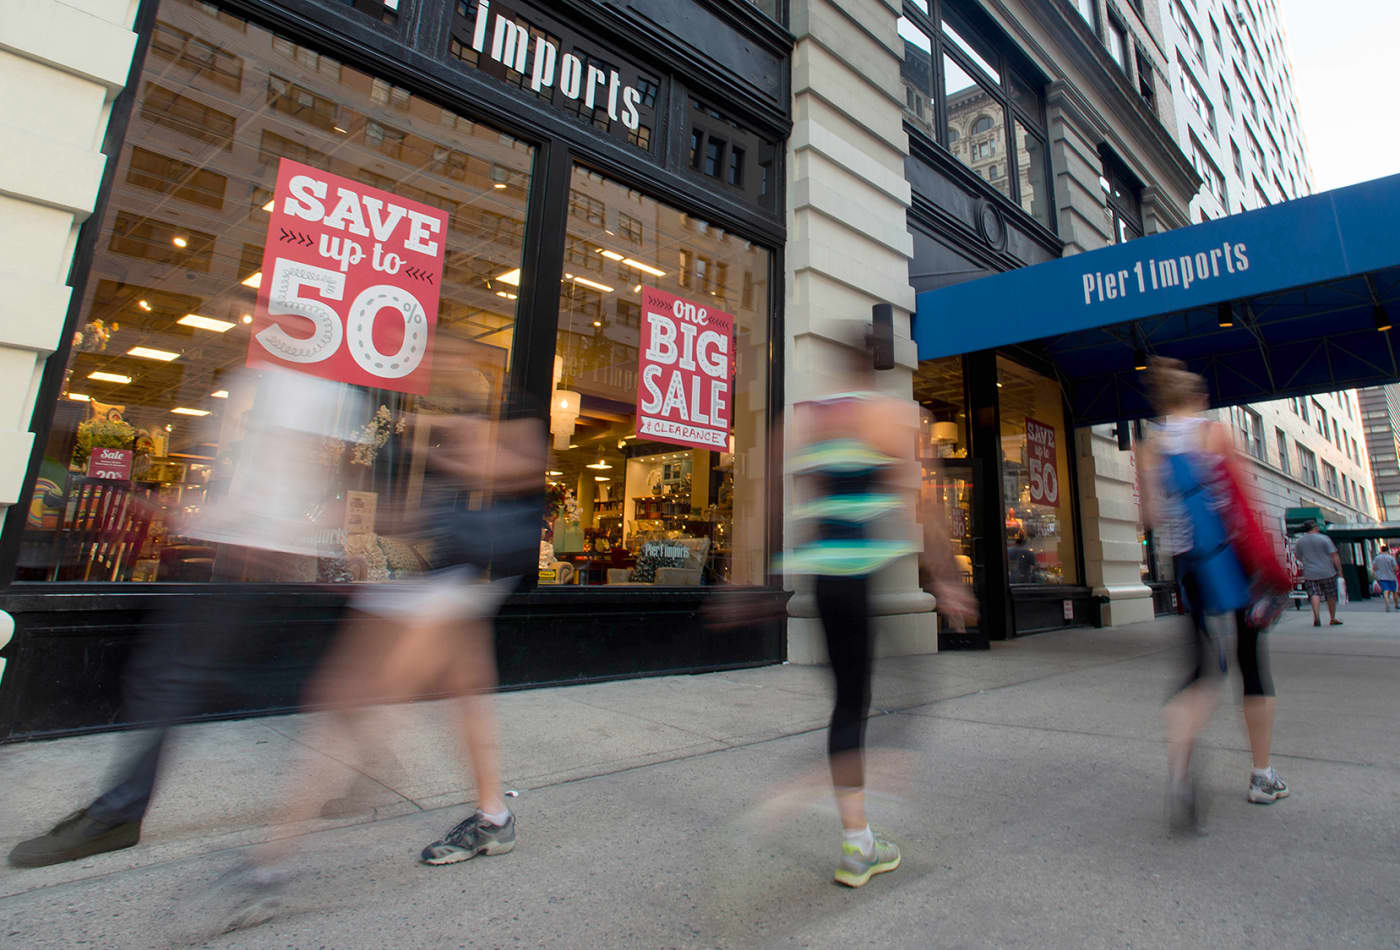 These retailers could be winners as Pier 1 shuts 50% of its stores